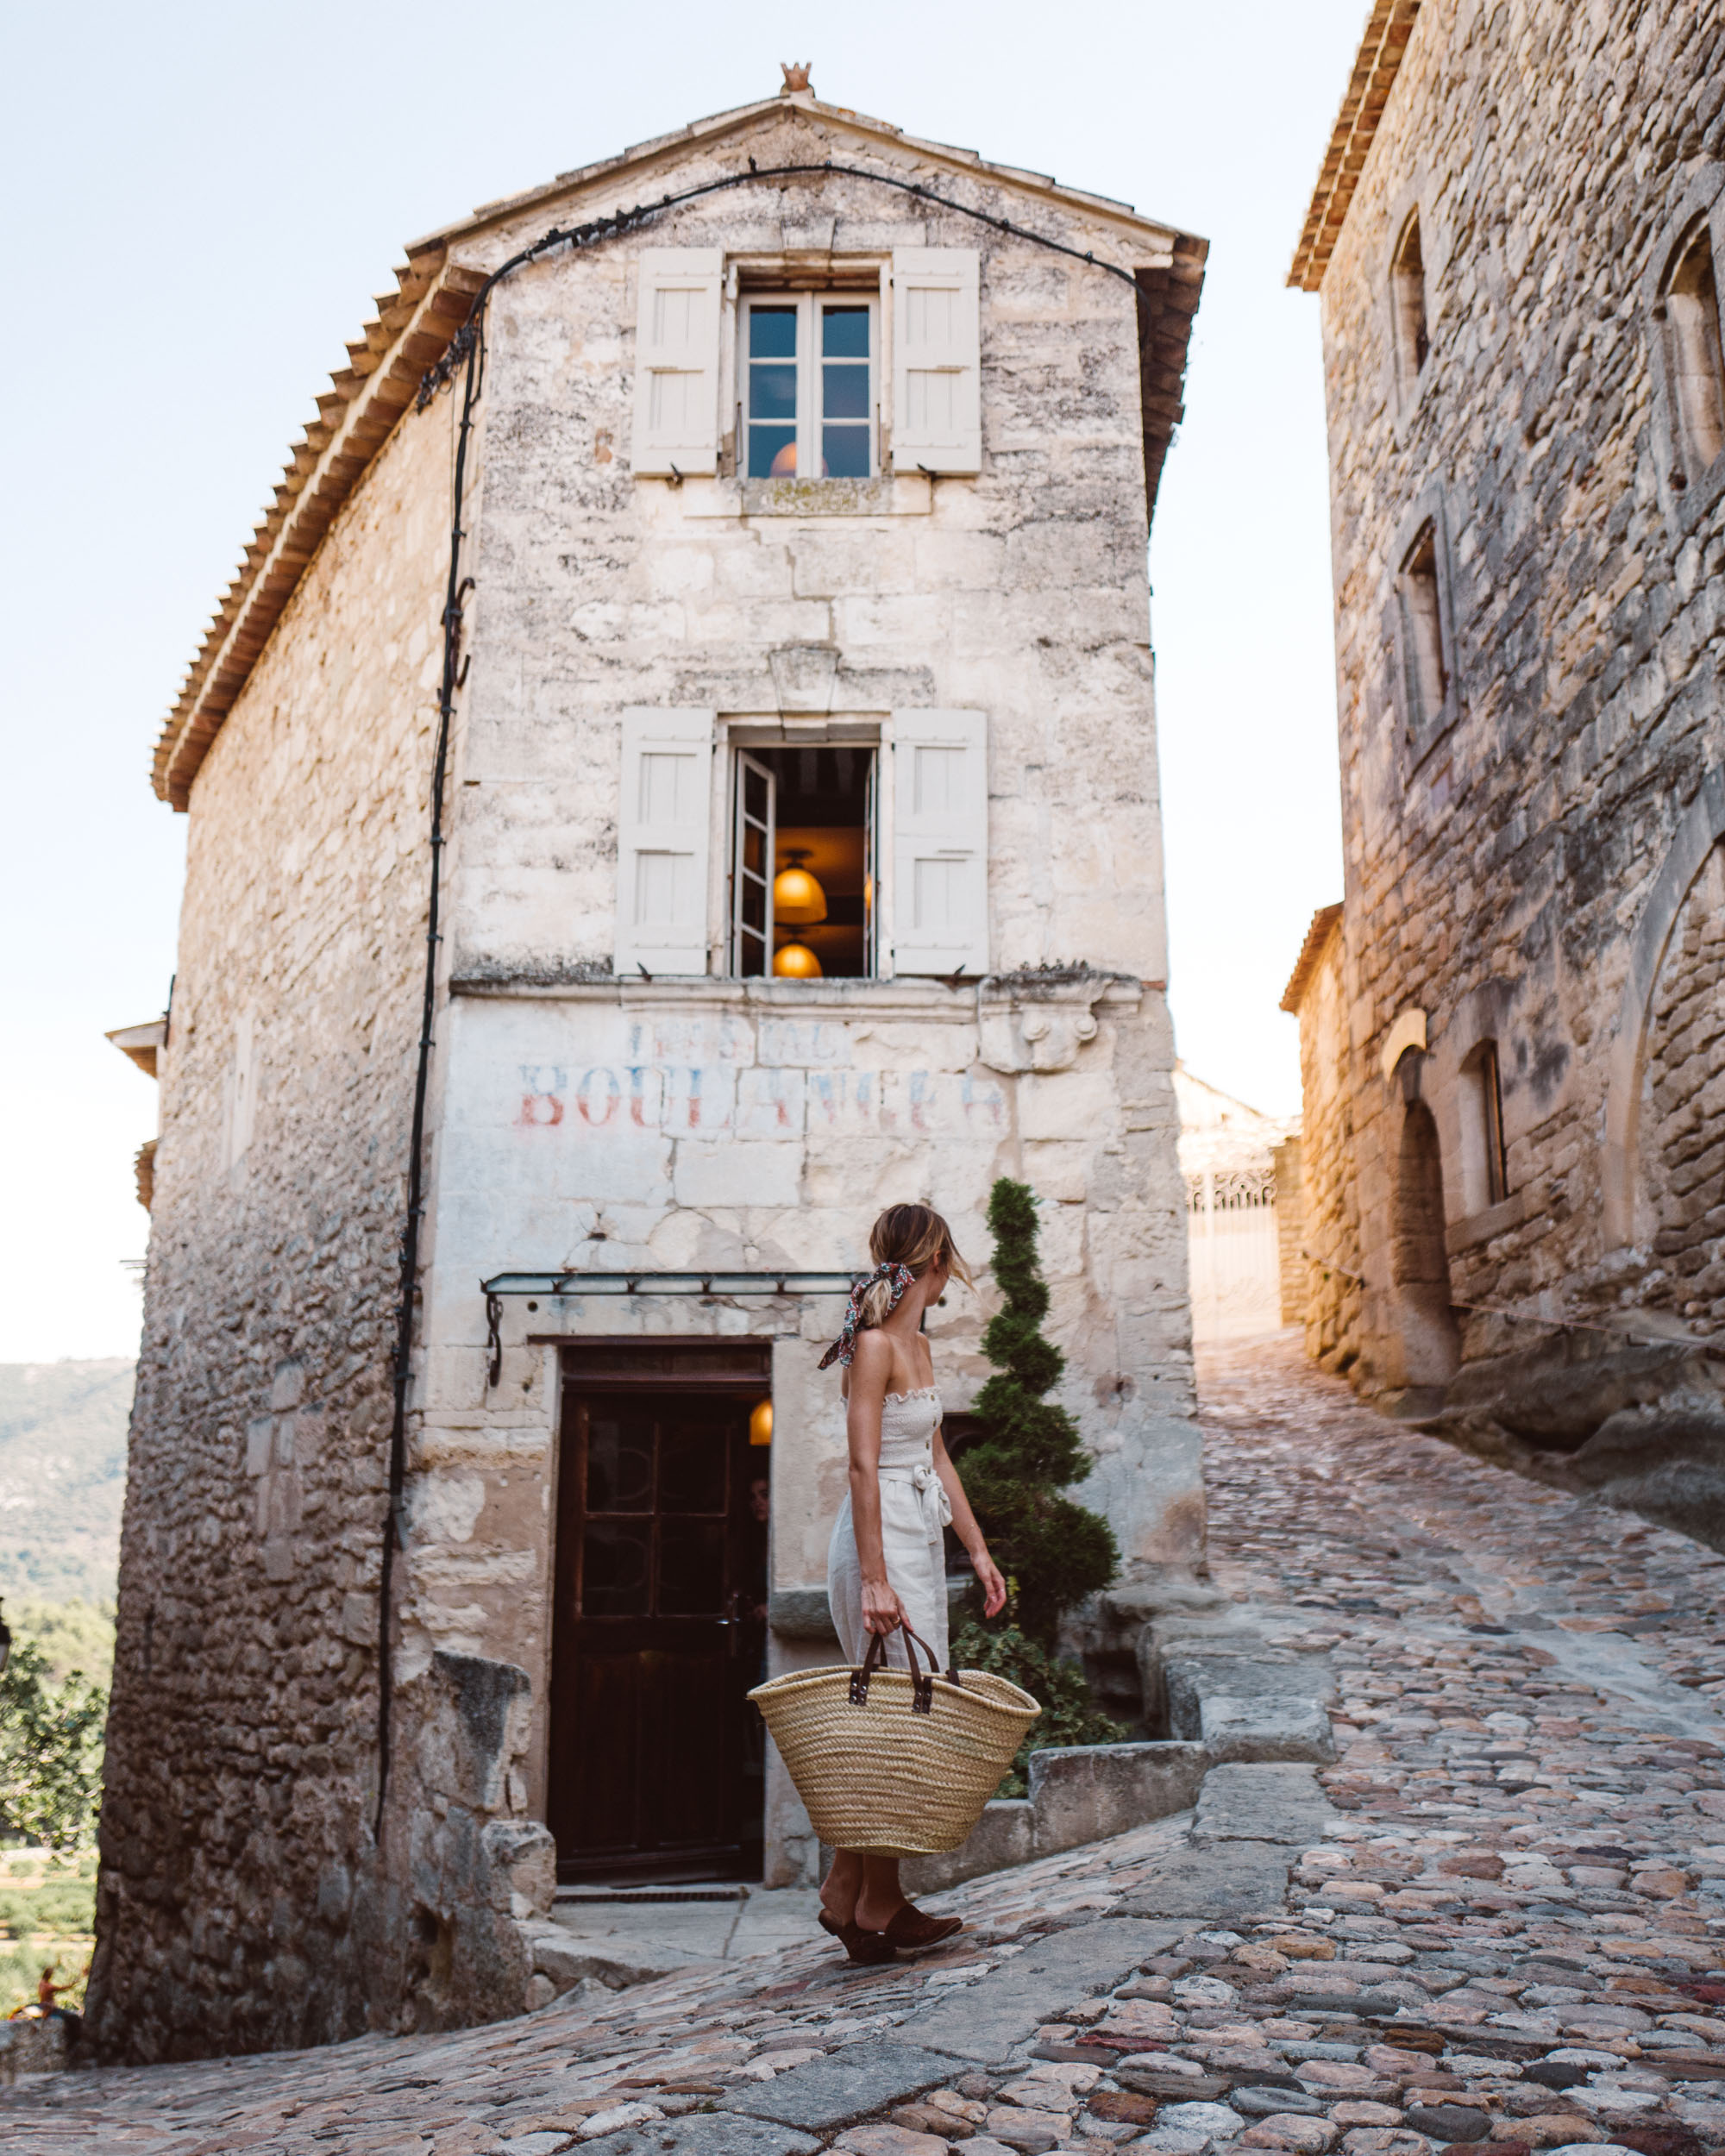 Lacoste hilltop town in Luberon, Provence, France